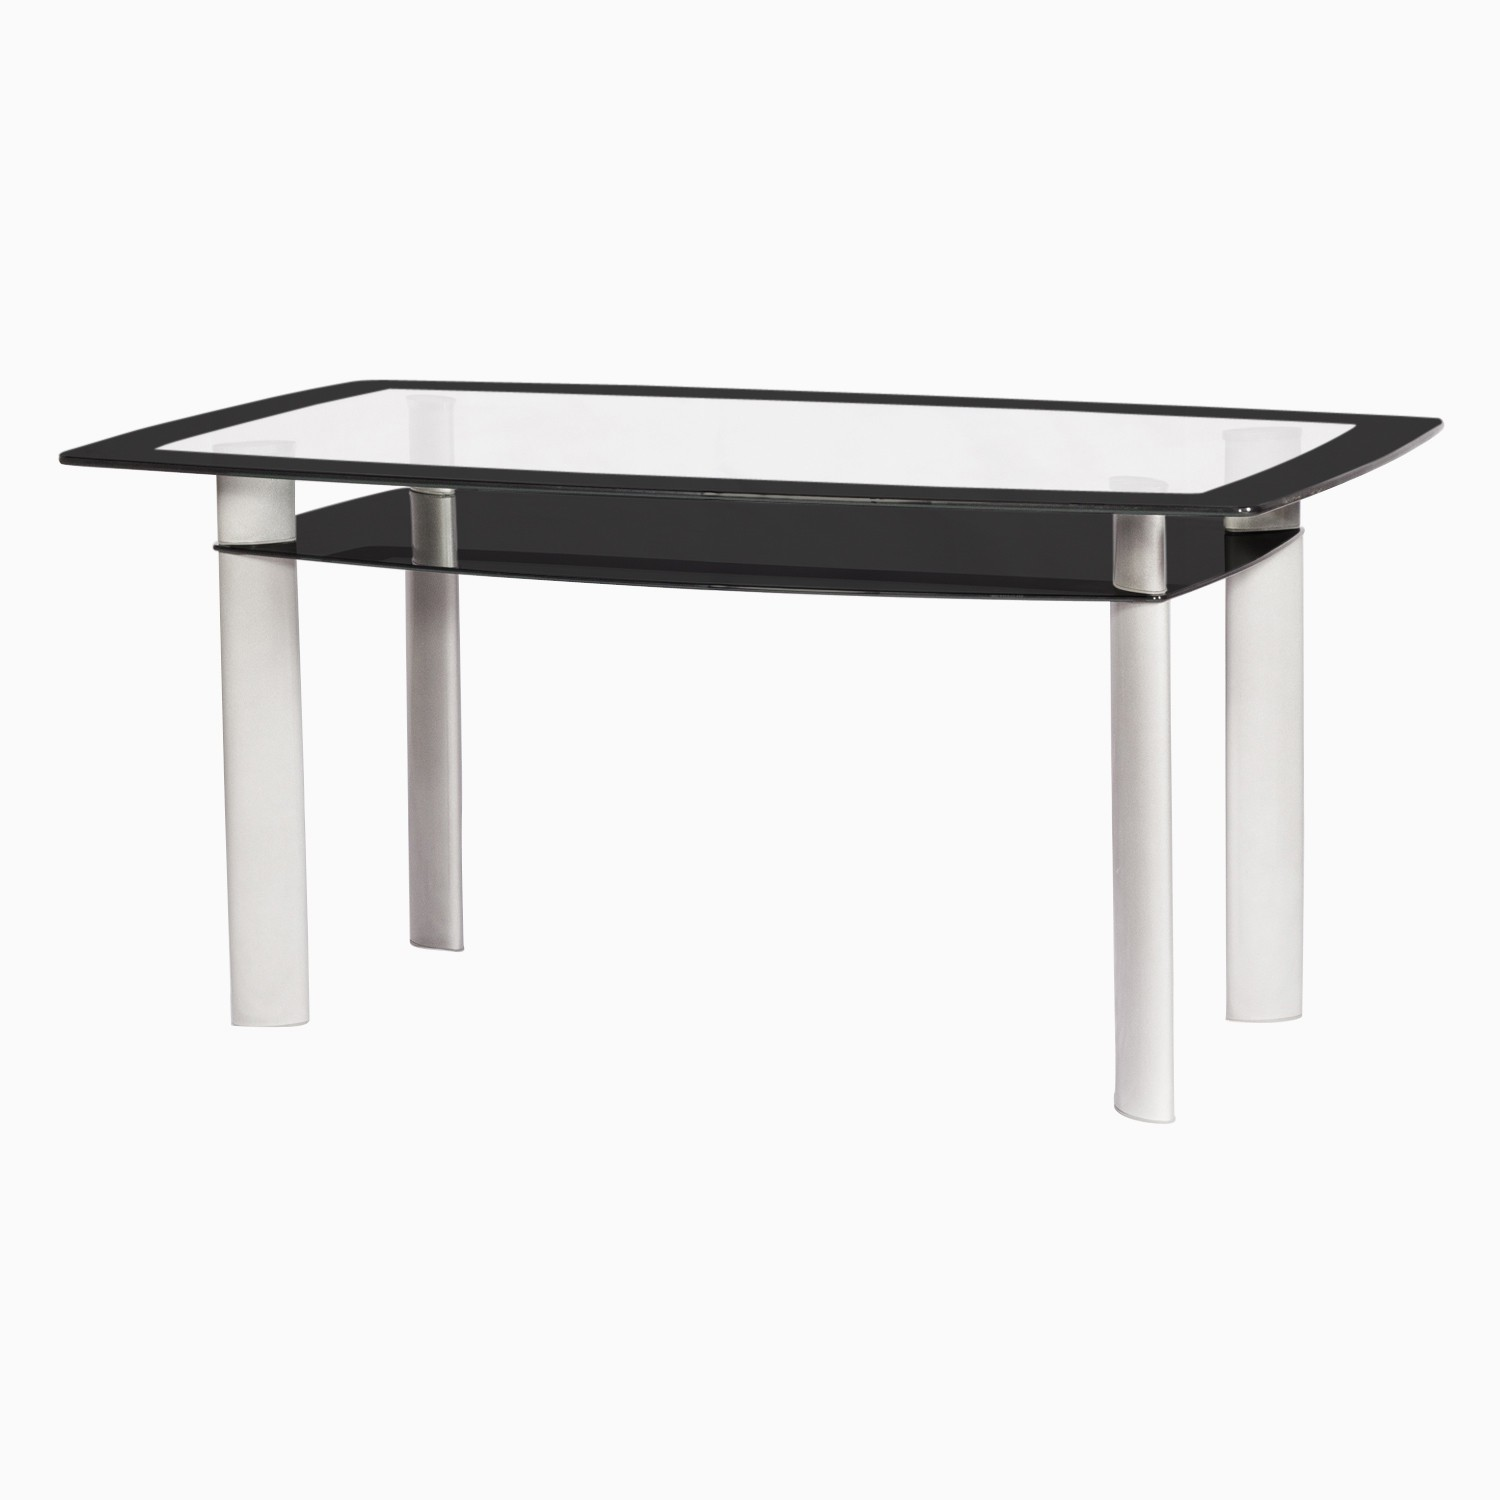 godrej interio glaze dining table glowest price by flipkartrs